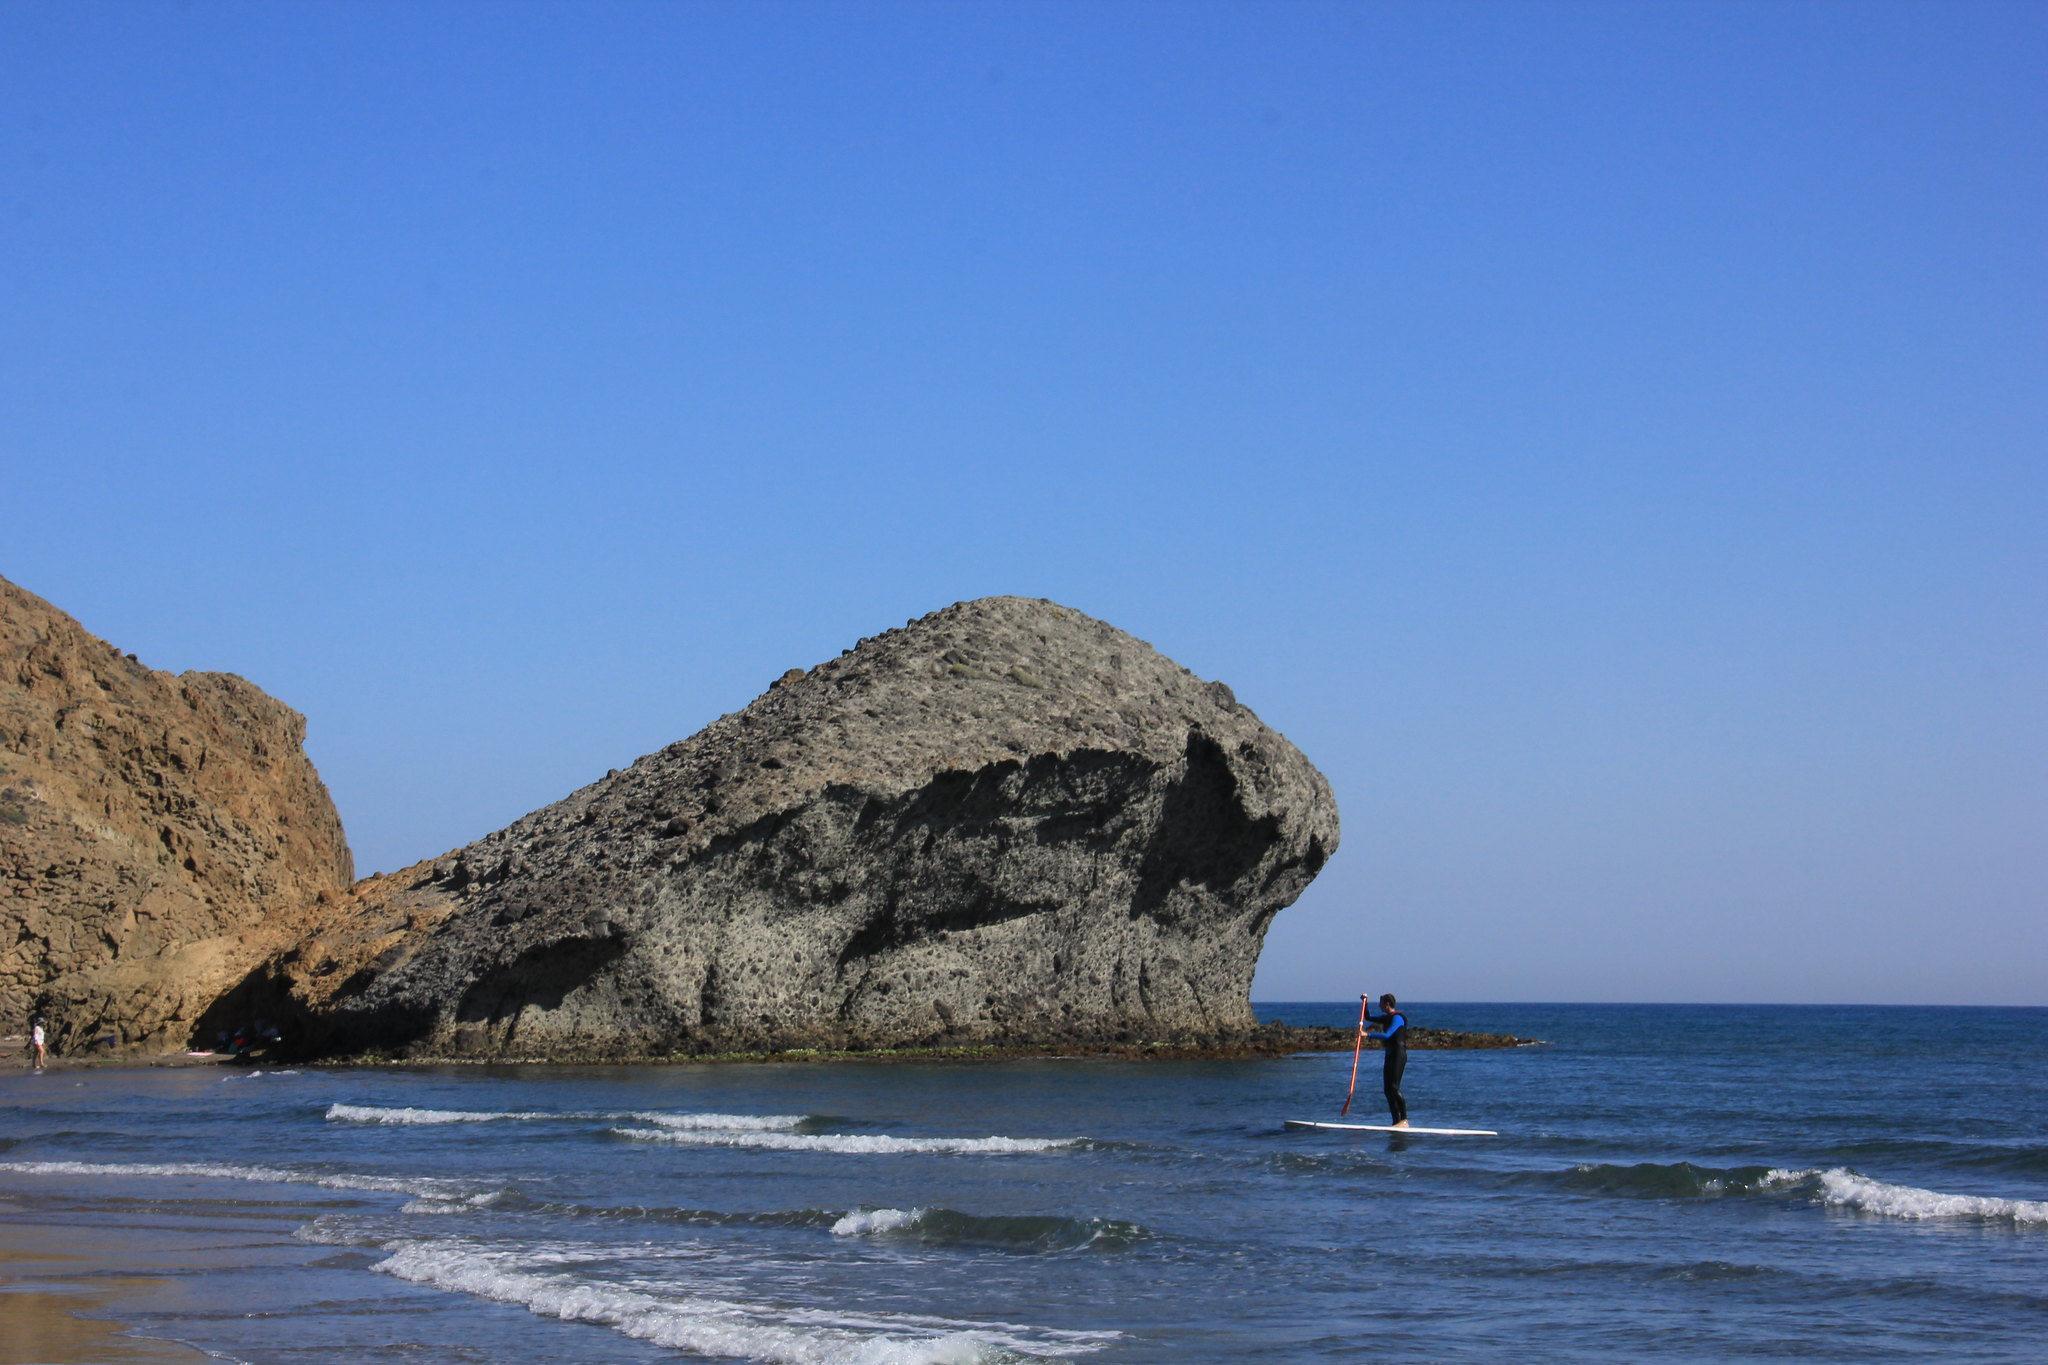 This beach of cabo de gata national park was featured in the movie Indiana Jones